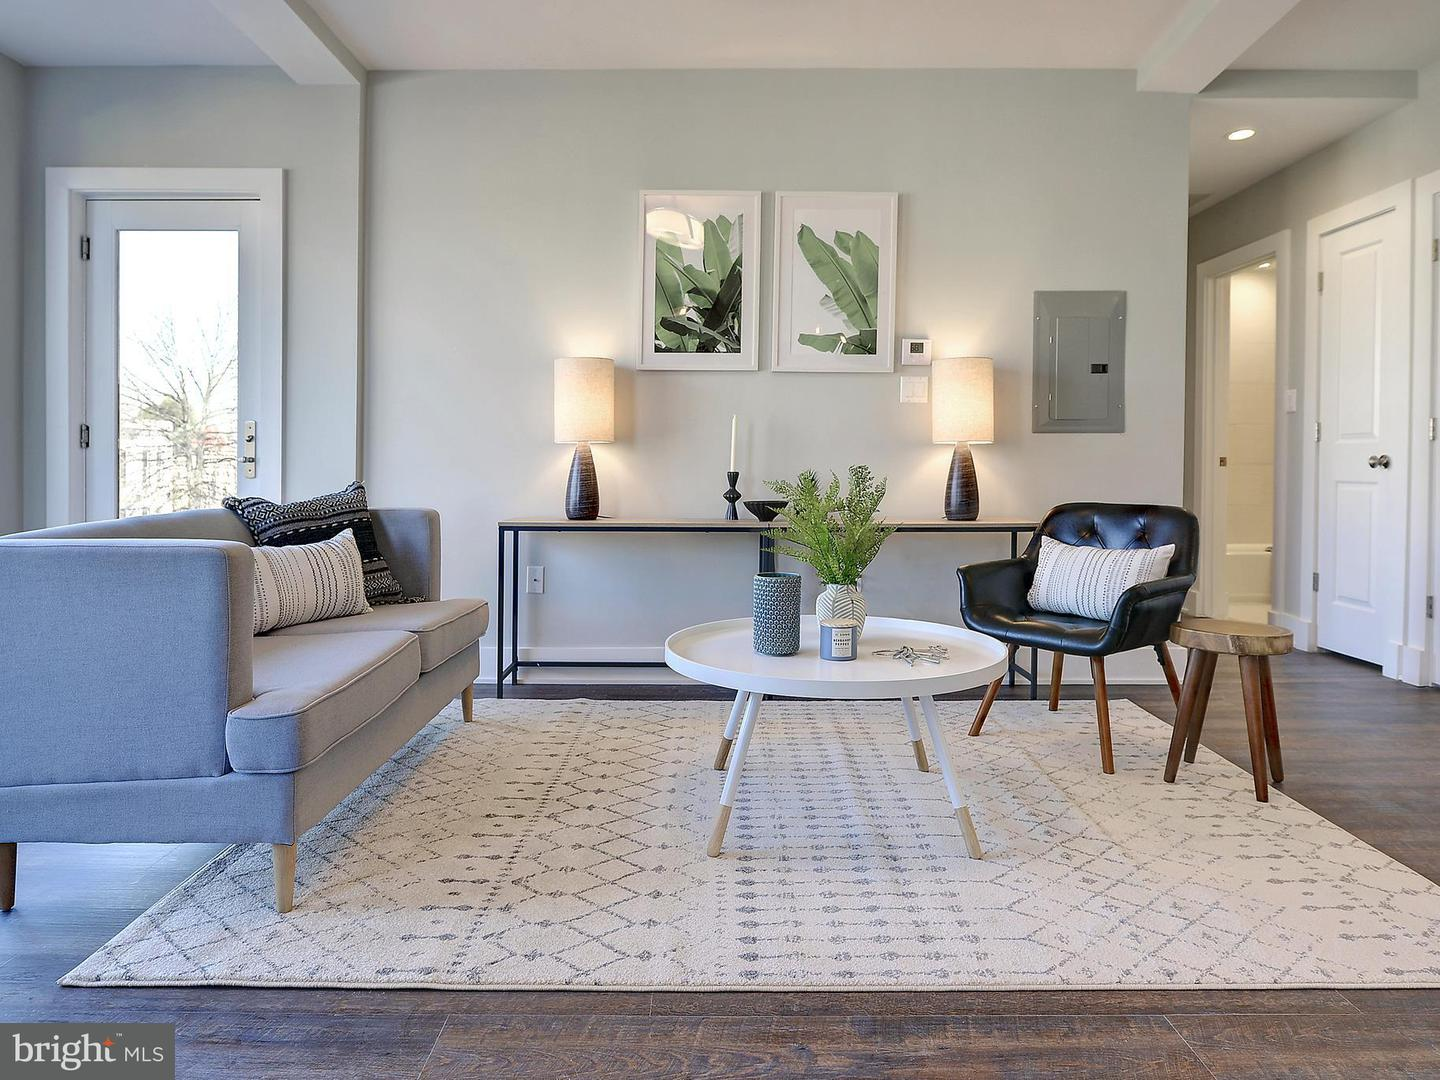 Other Residential for Rent at 1219 K St NE #304 Washington, District Of Columbia 20002 United States